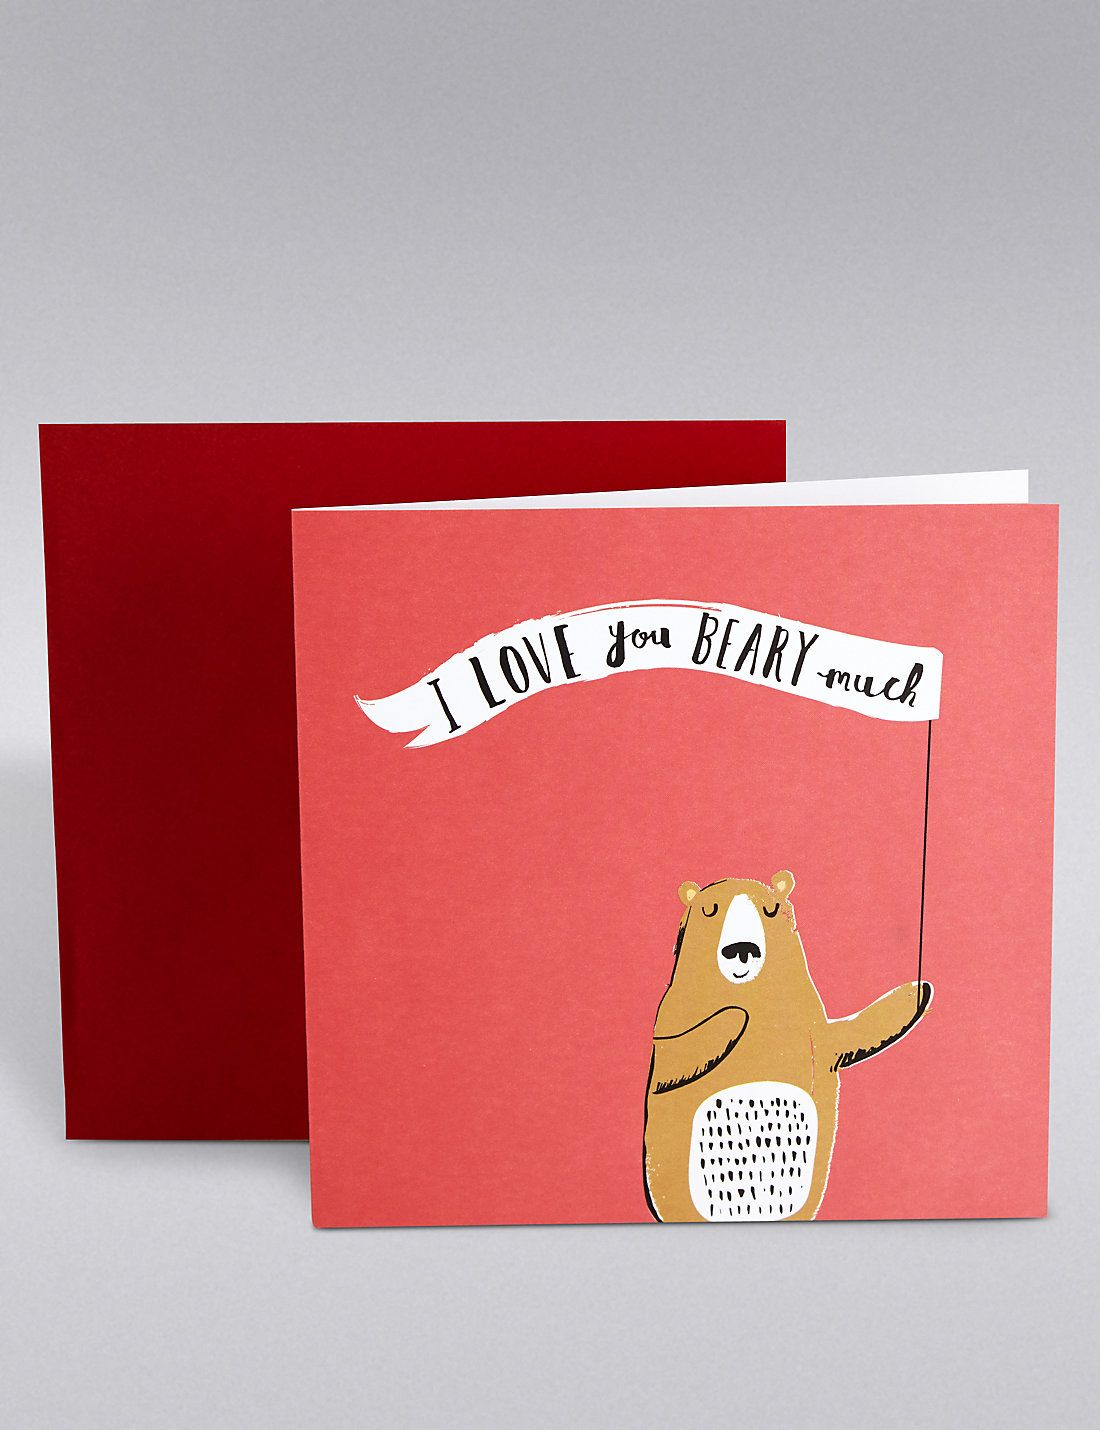 Illustrated bears marks and spencers trend bible valentines 2016 illustrated bears marks and spencers trend bible valentines 2016 retail report coming soon http valentine day cardslatest trendsgreeting kristyandbryce Image collections